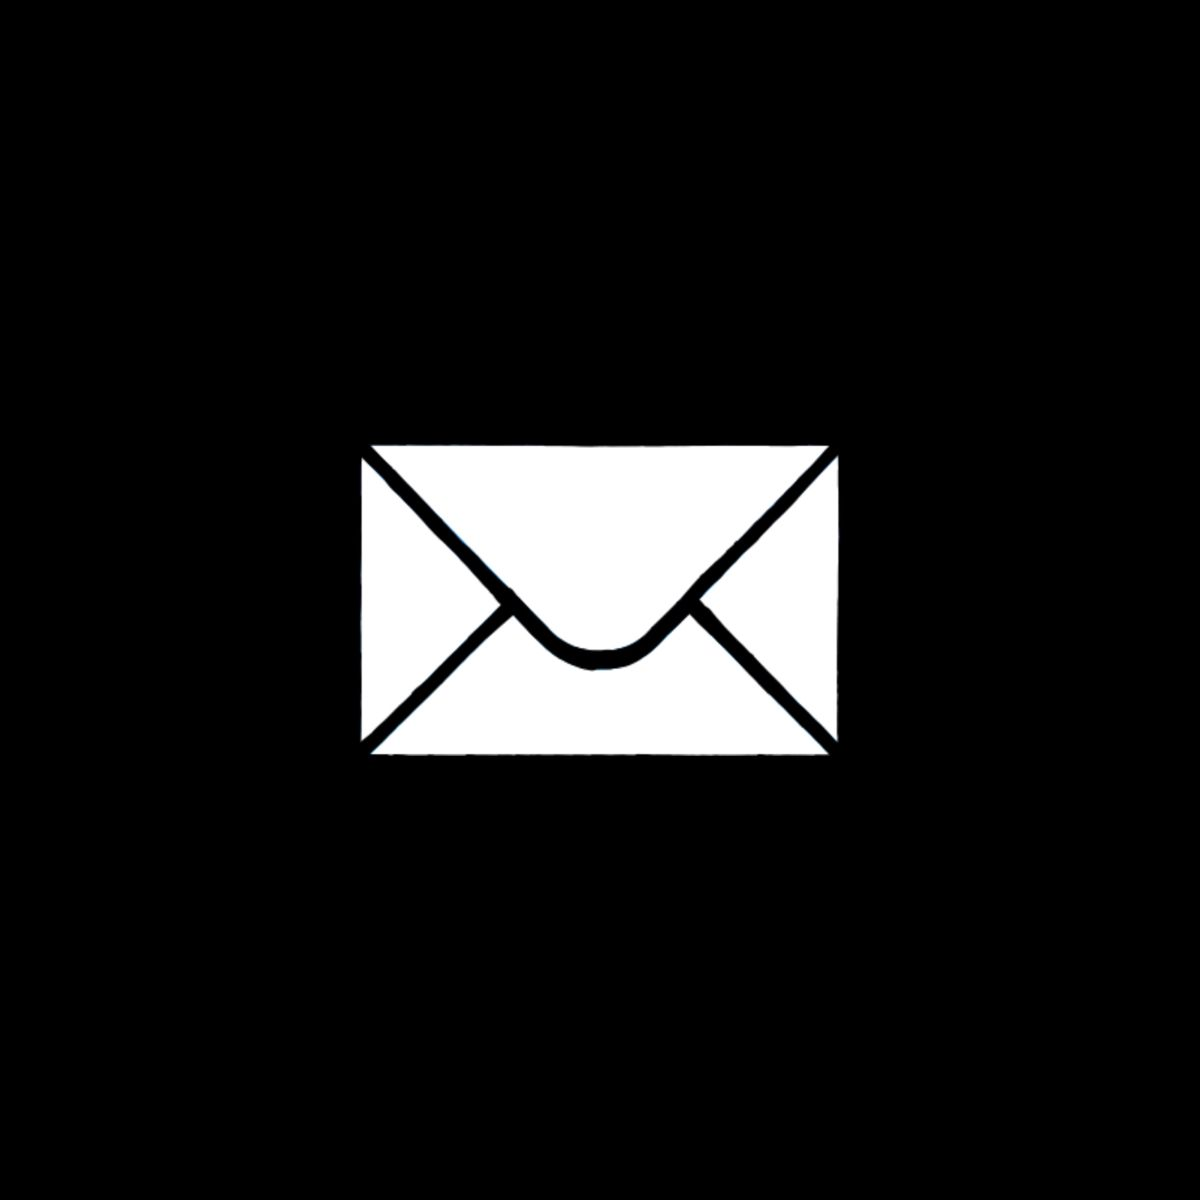 Black Aesthetic Email App Icon For Ios14 App Icon Phone Icon Iphone Icon